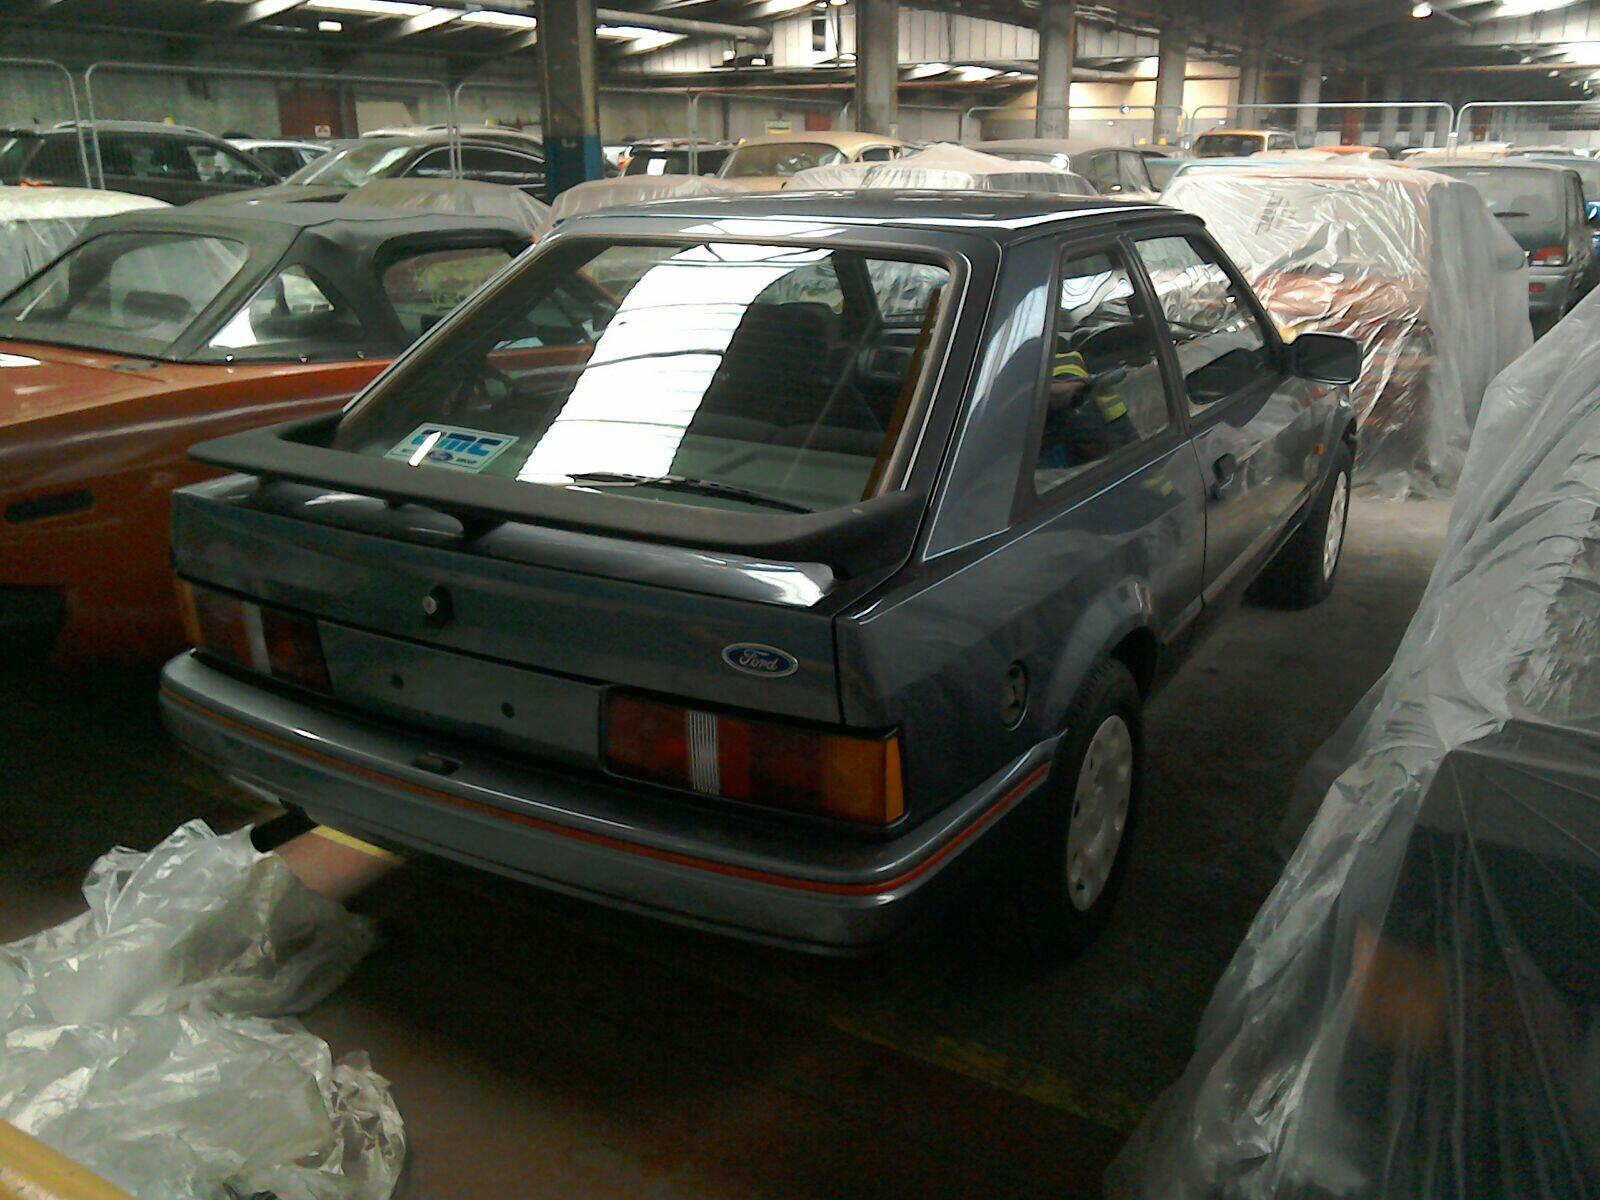 1987 Ford Escort 3 Door Hatchback